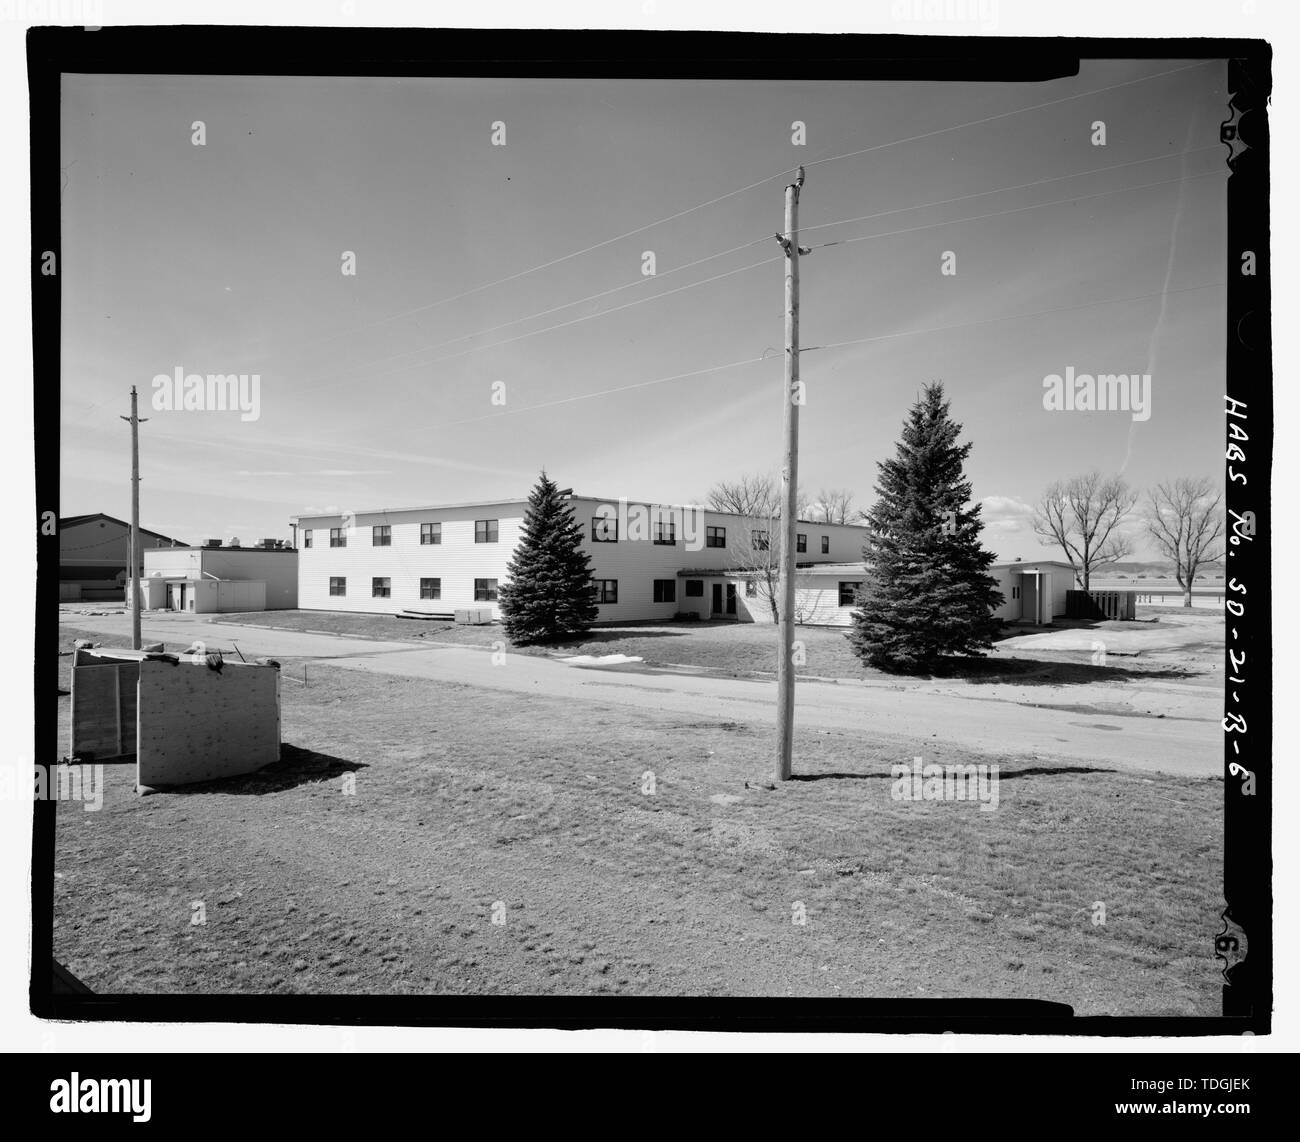 Northeast corner, view to southwest. - Ellsworth Air Force Base, Readiness Building, 810 Kenny Road, Blackhawk, Meade County, SD; Wilson and Company; U.S. Army Corps of Engineers; Jackson, Christiana, transmitter; Barbalace, Donald S, photographer; Anderson, Kenneth L, historian - Stock Image